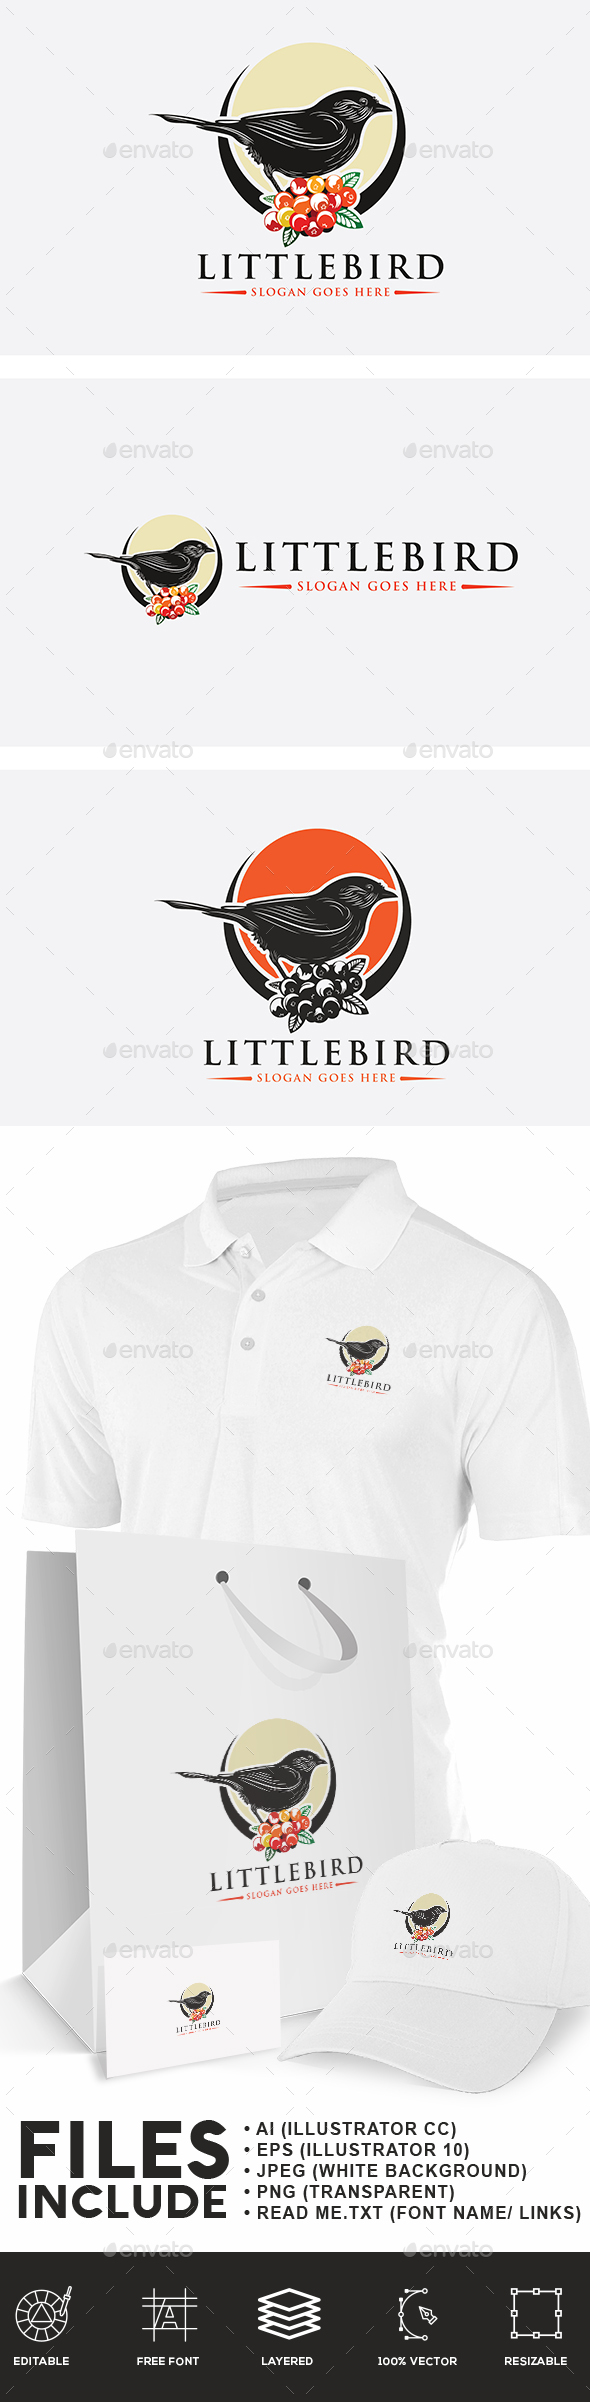 Little Bird Logo - Animals Logo Templates